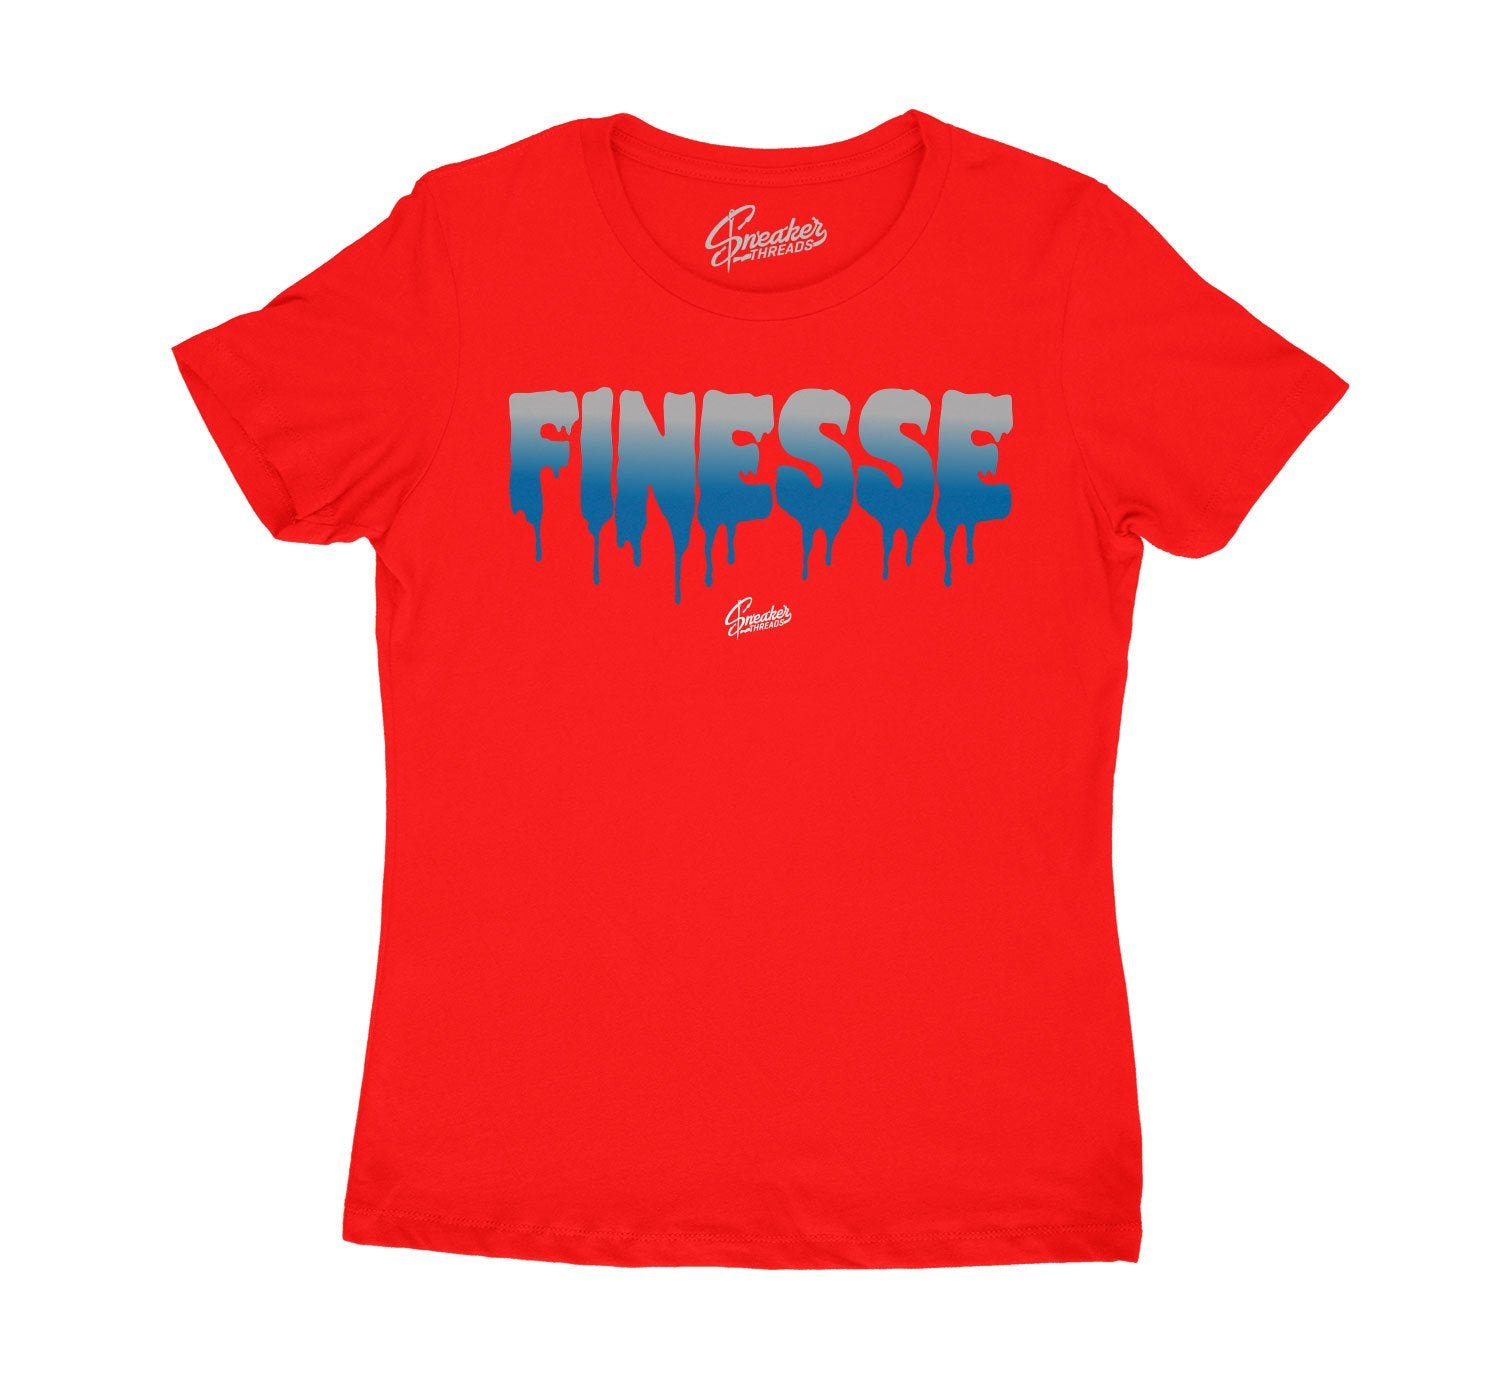 Finesse Women Clothing match Jordan 4 What The Four